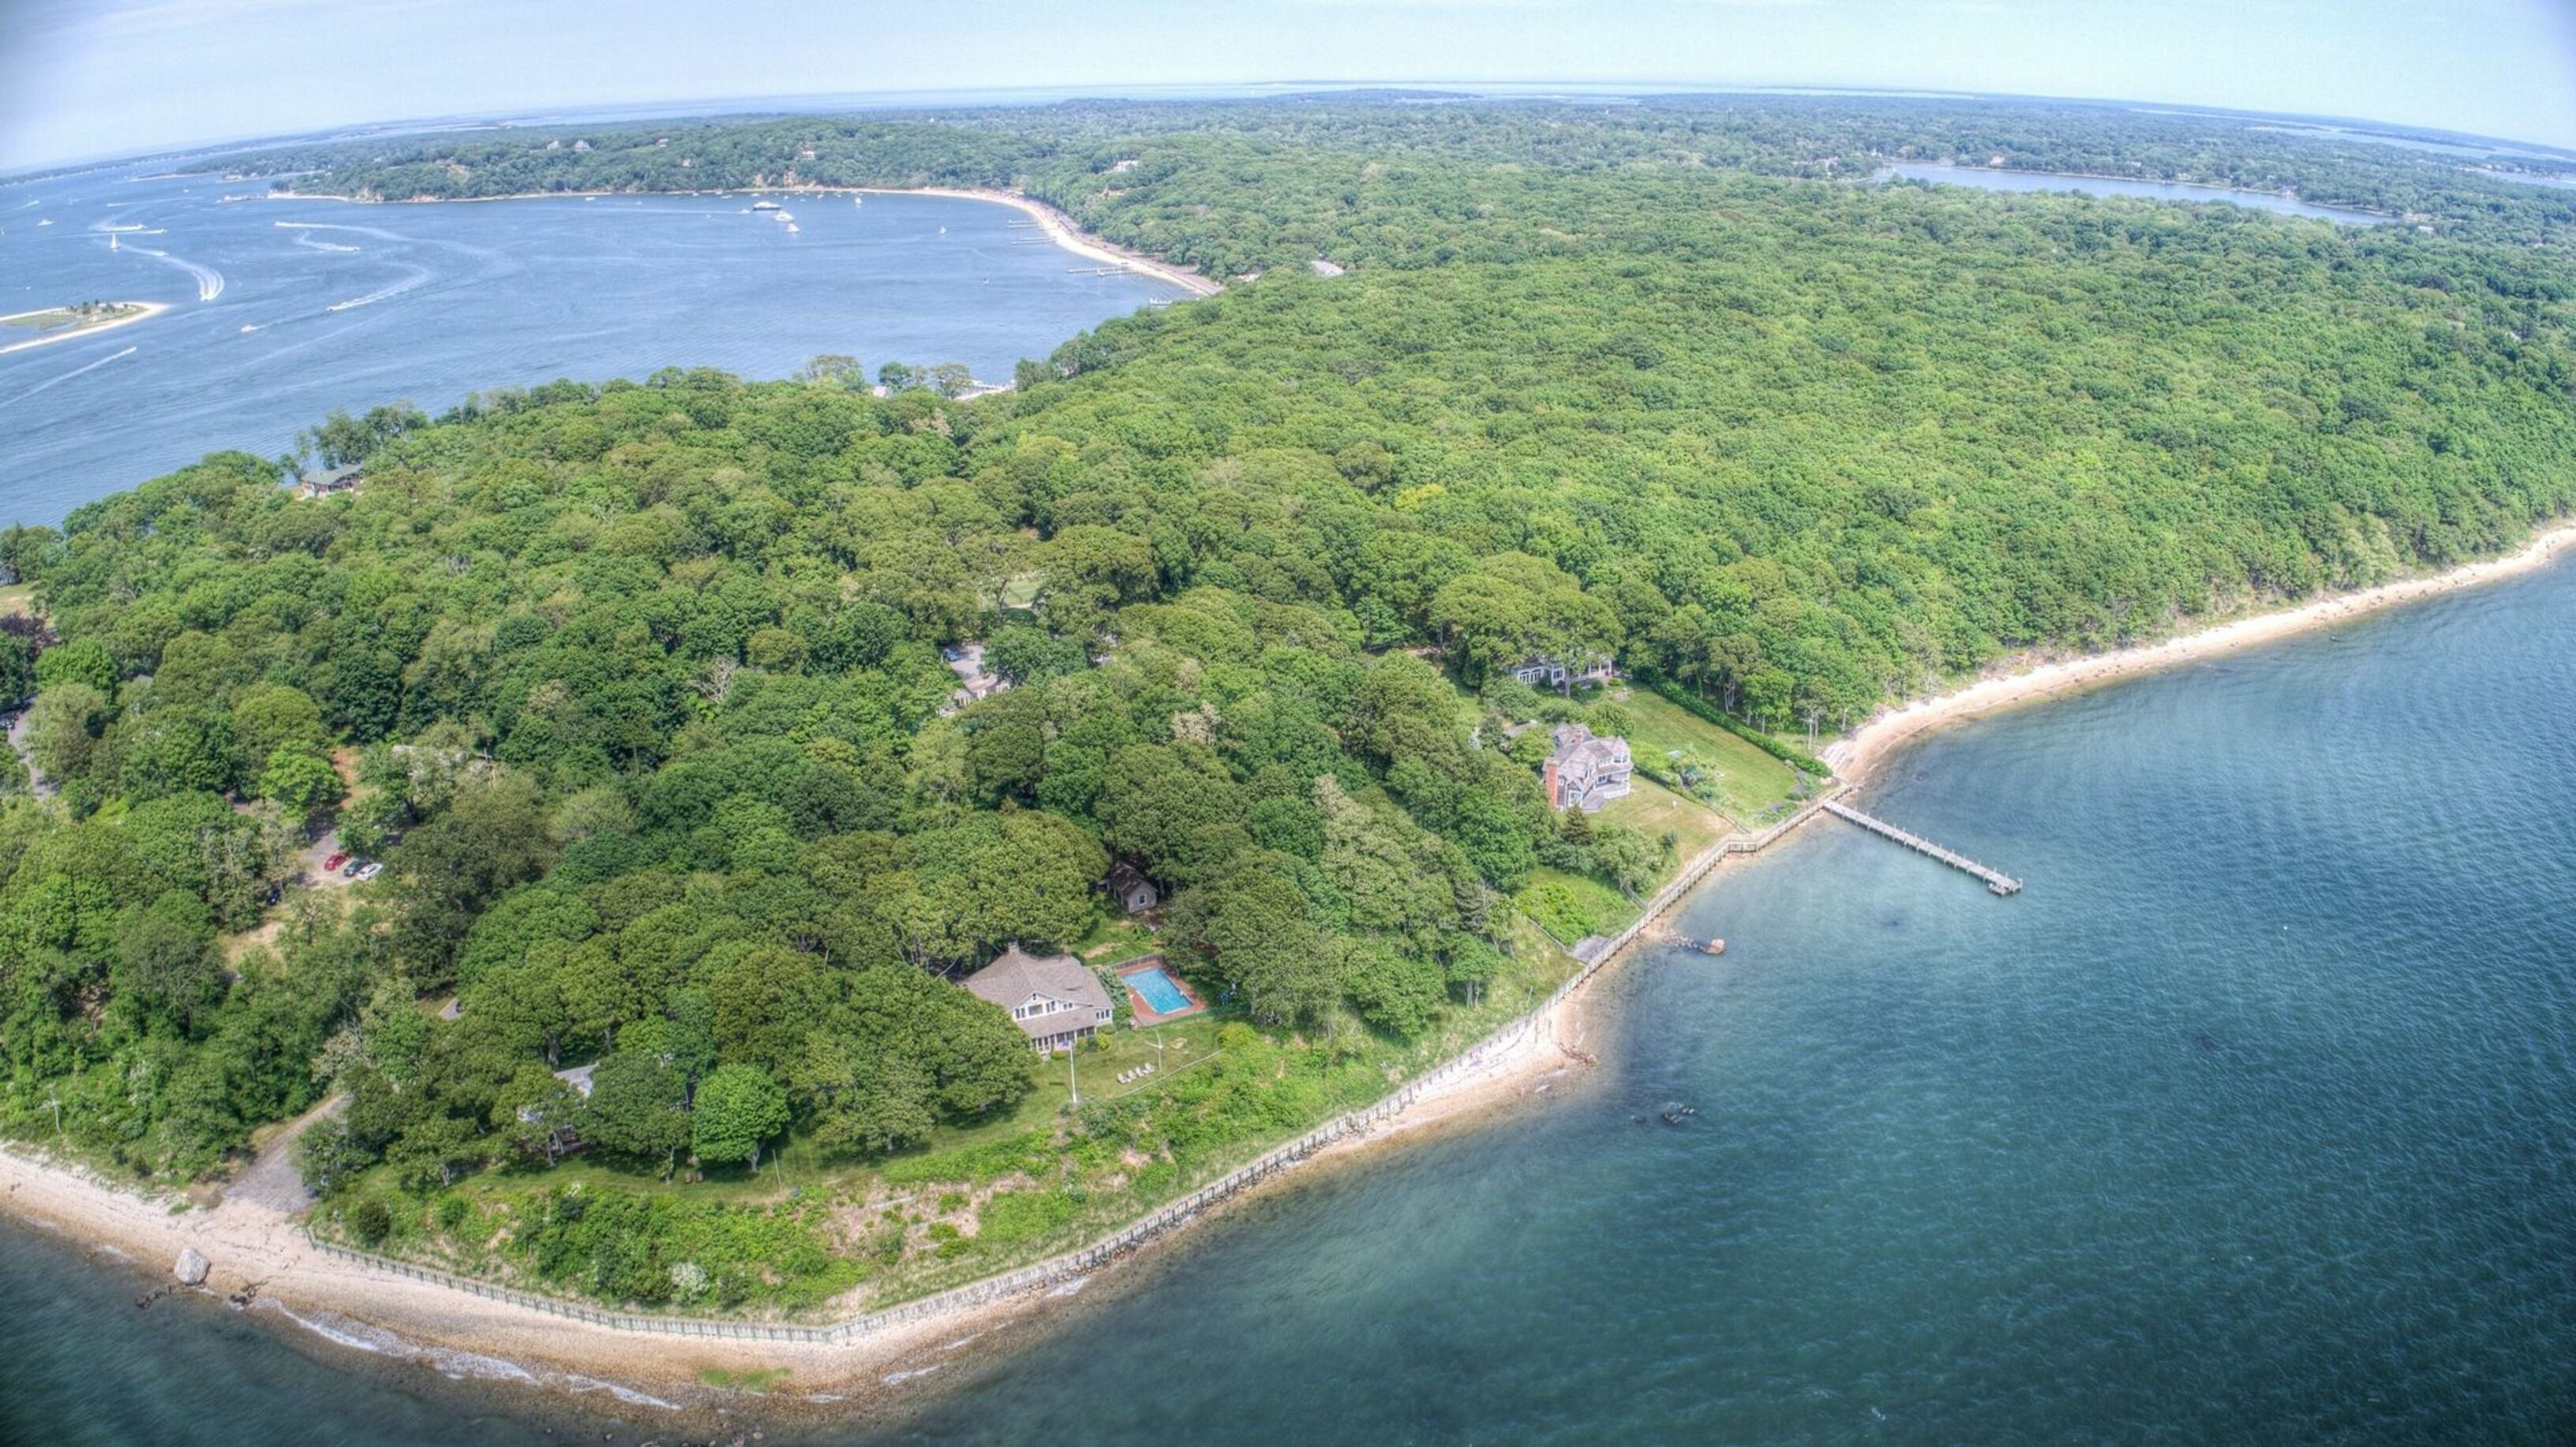 Bucolic Waterfront Dream Located on Prestigious Nostrand Pkwy